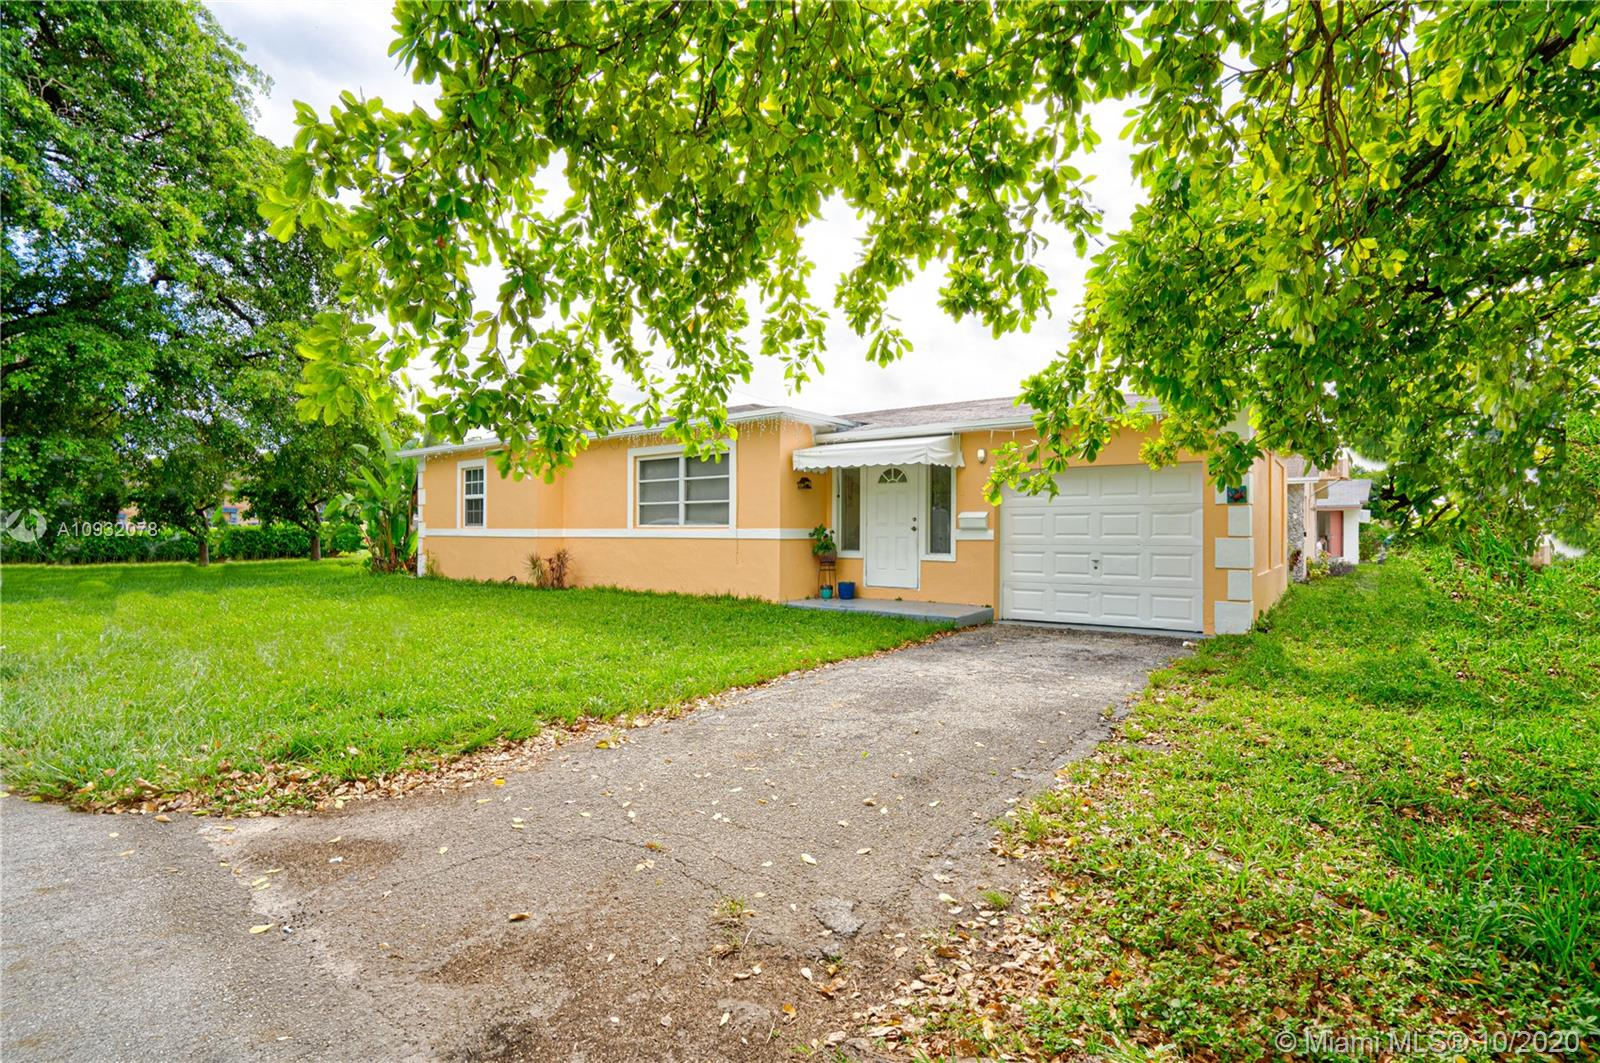 1824 N 23rd Ave, Hollywood, Florida 33020, 3 Bedrooms Bedrooms, ,2 BathroomsBathrooms,Residential,For Sale,1824 N 23rd Ave,A10932078